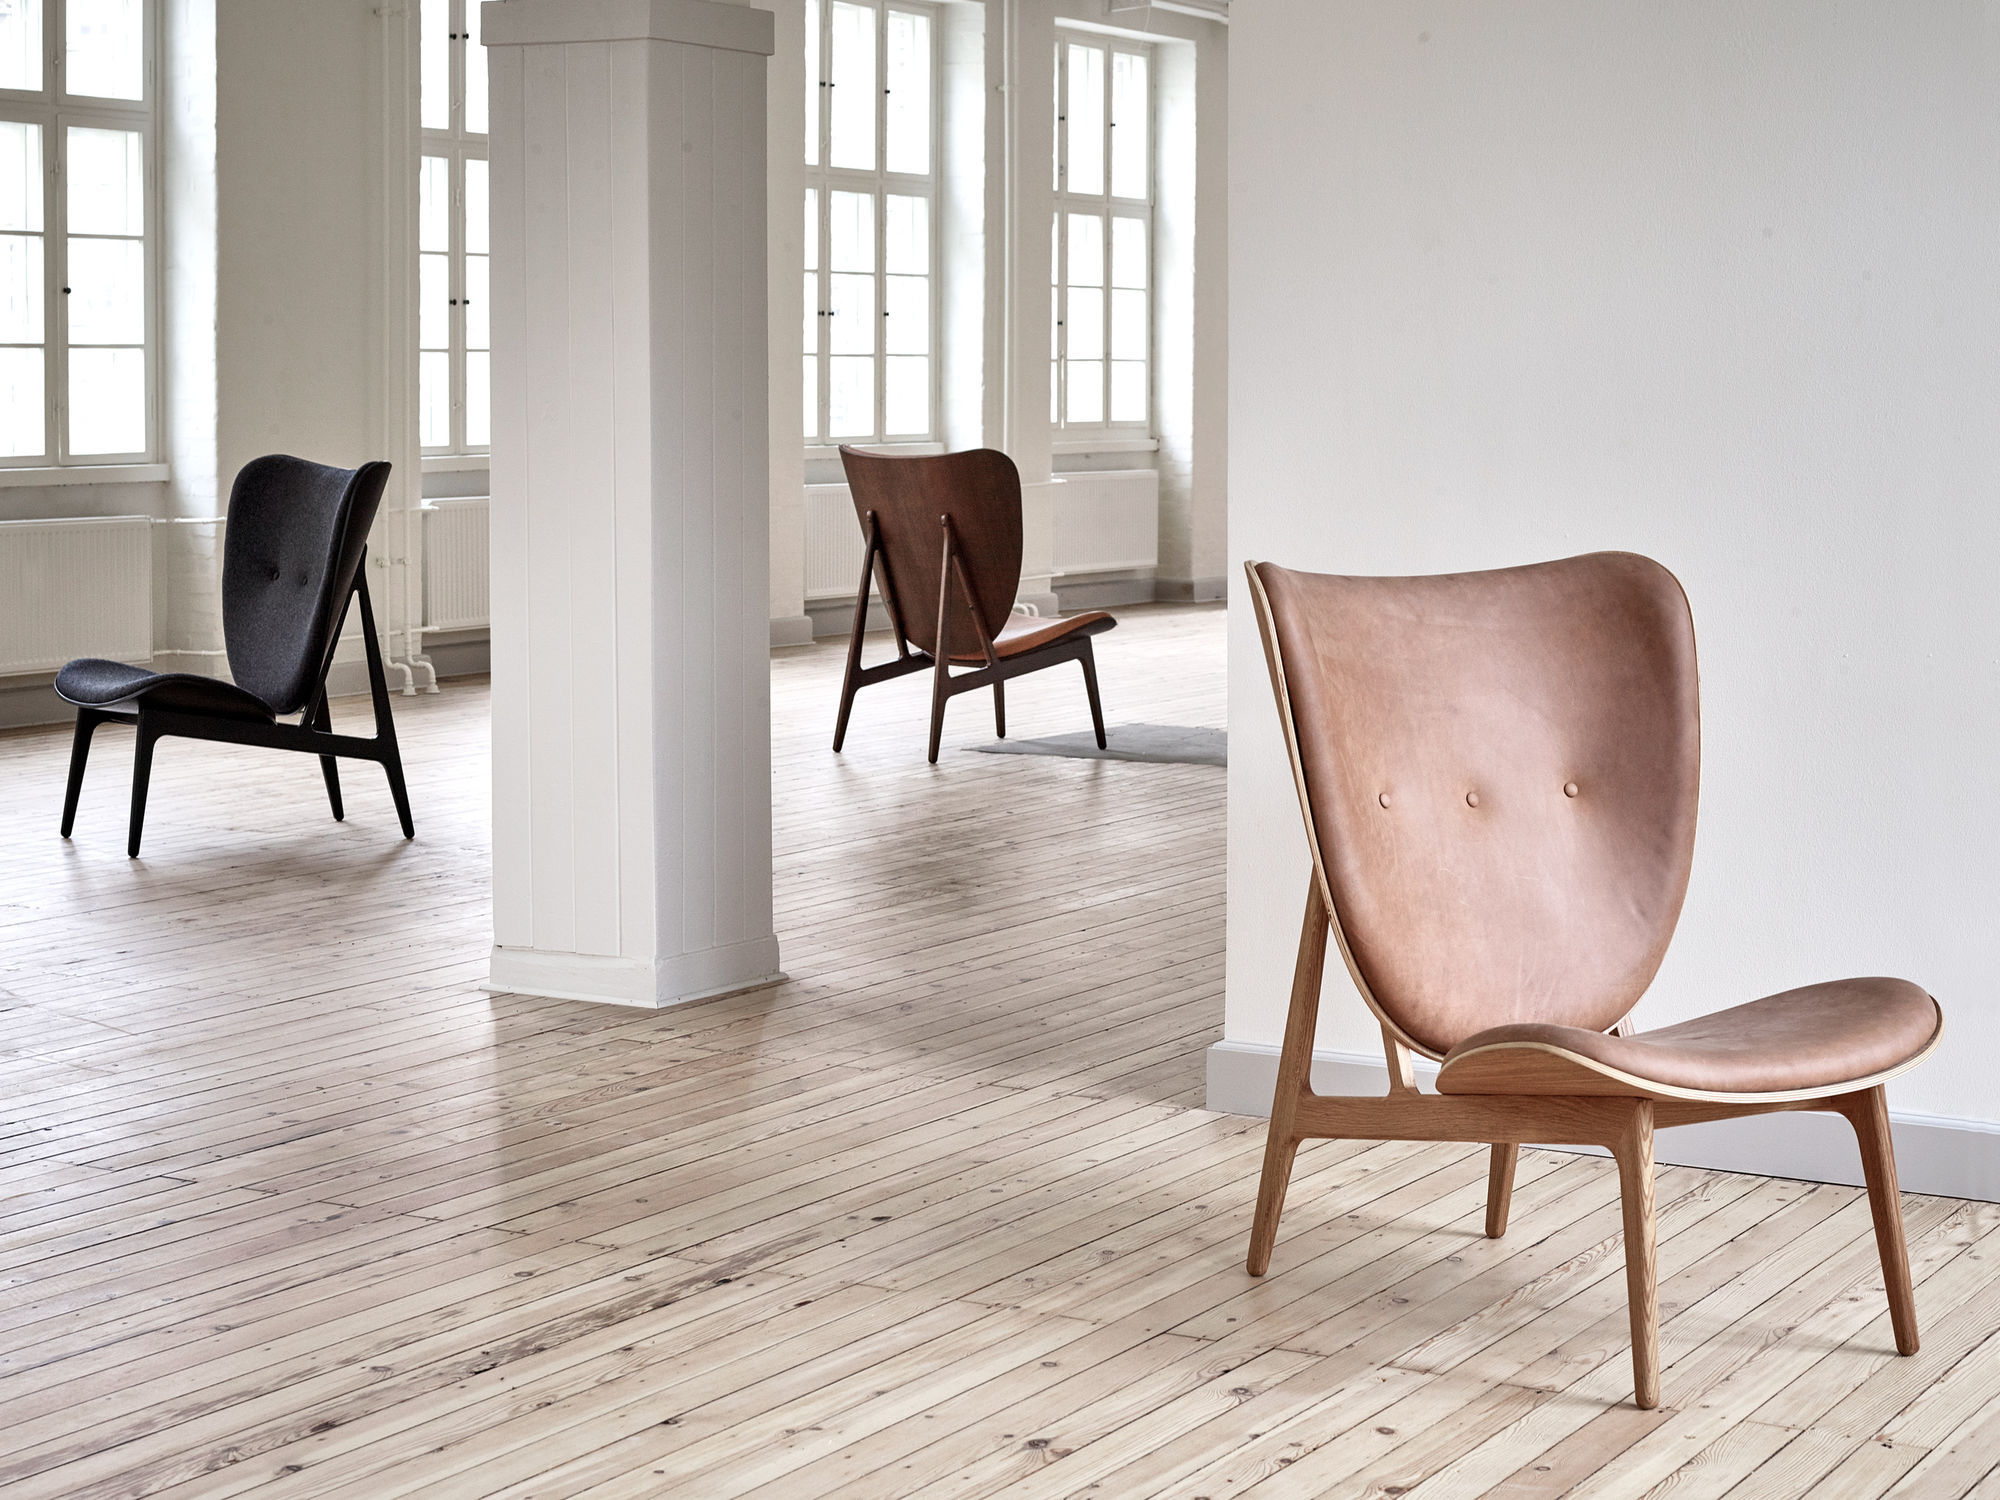 Contemporary Lounge Chair / Leather / Wooden / Upholstered ELEPHANT By  Kristian Sofus Hansen U0026 Tommy ...